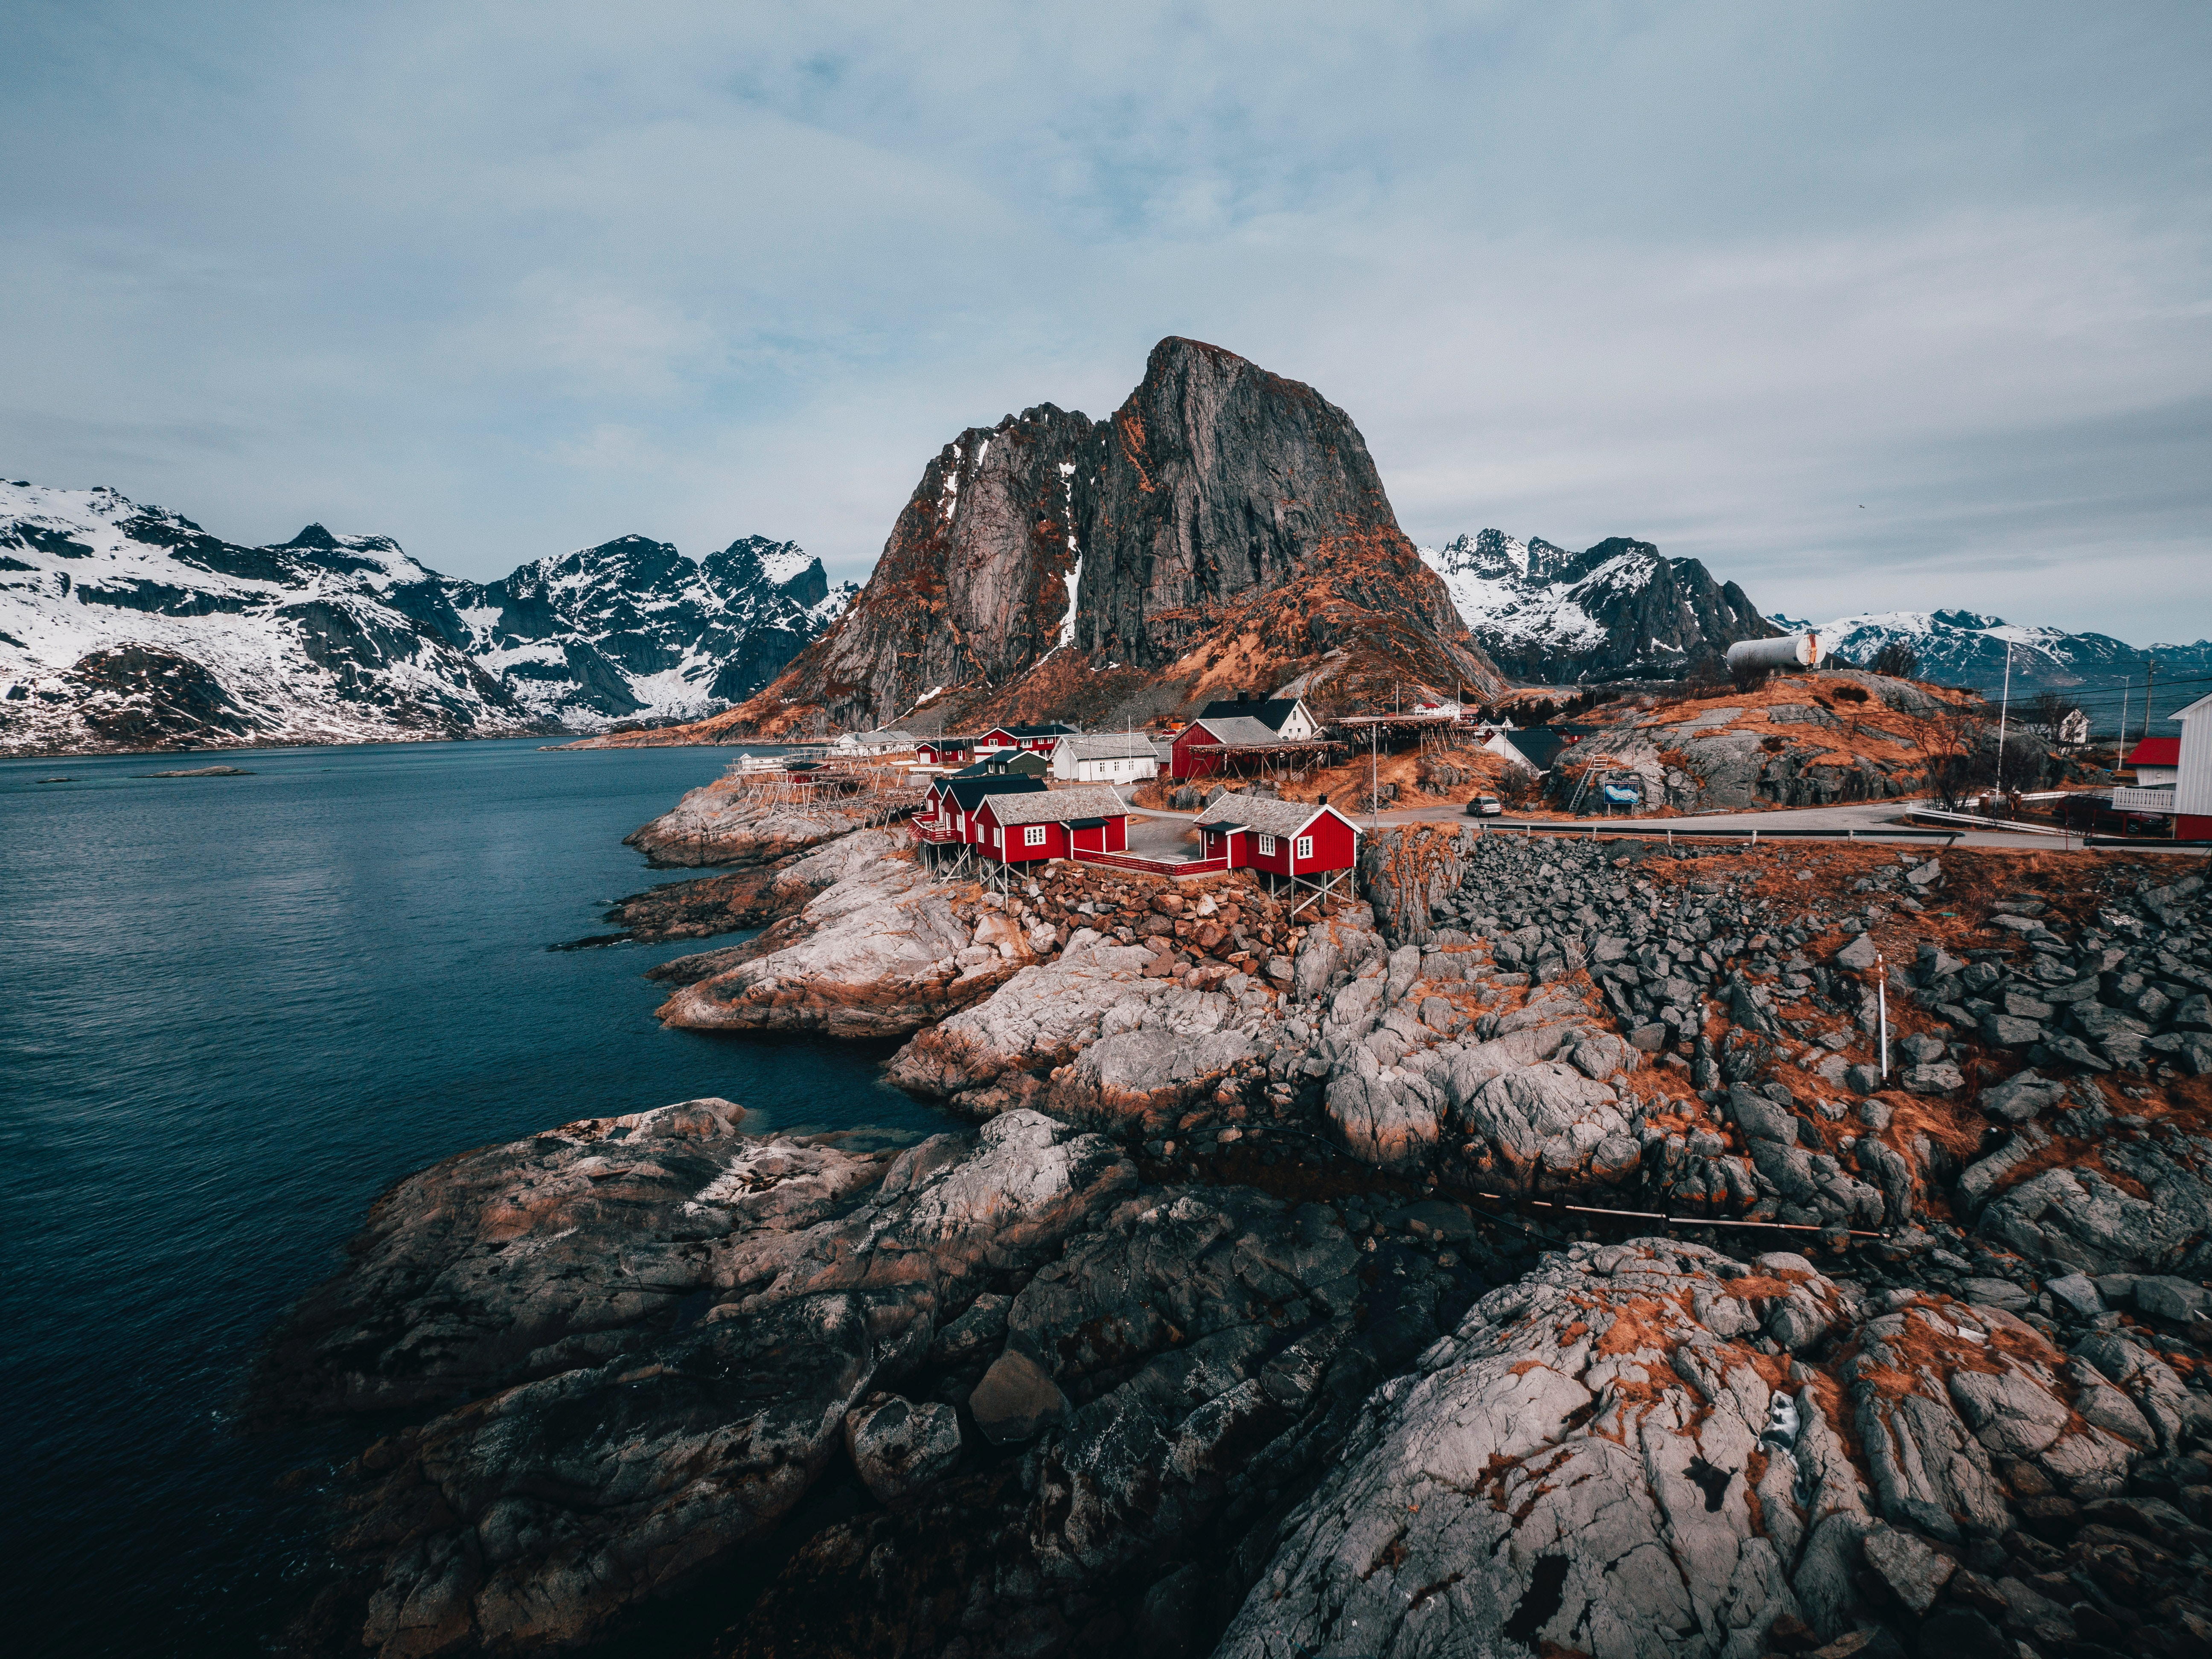 18 Incredible Scandinavia Travel Photos to Ignite Your Wanderlust